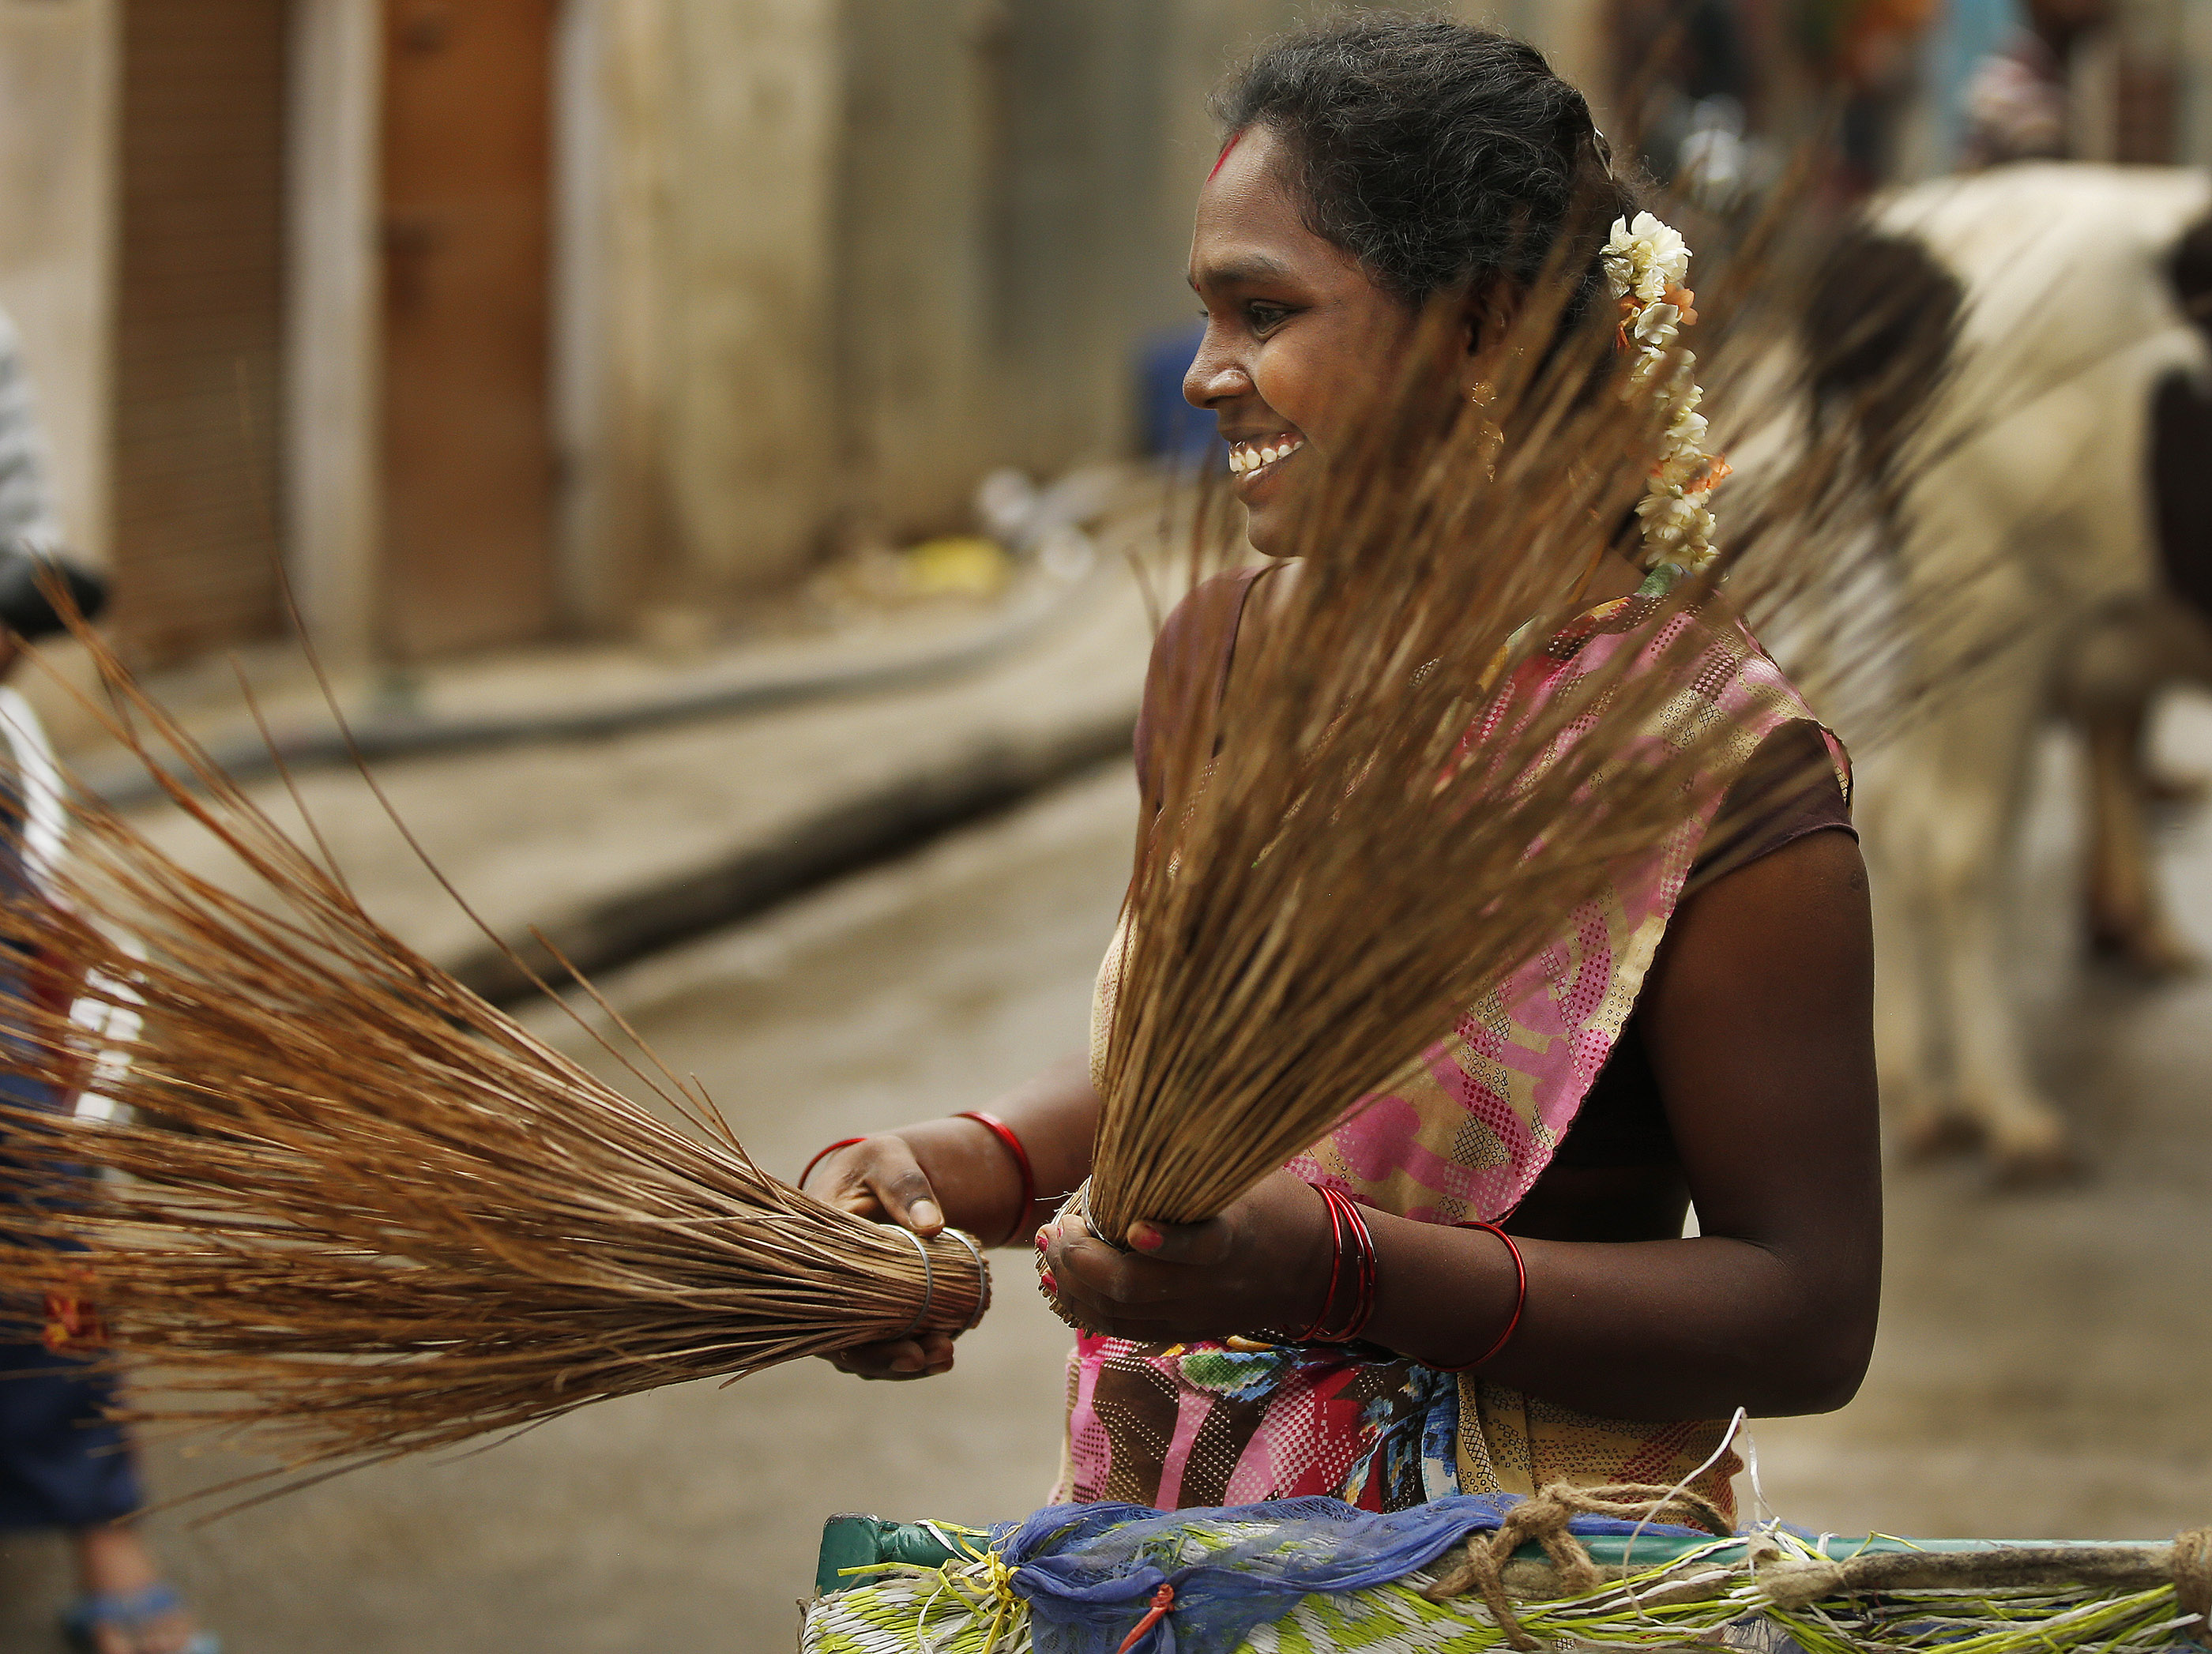 A woman prepares to sweep a street in Bengaluru, India, on Thursday, April 19, 2018.